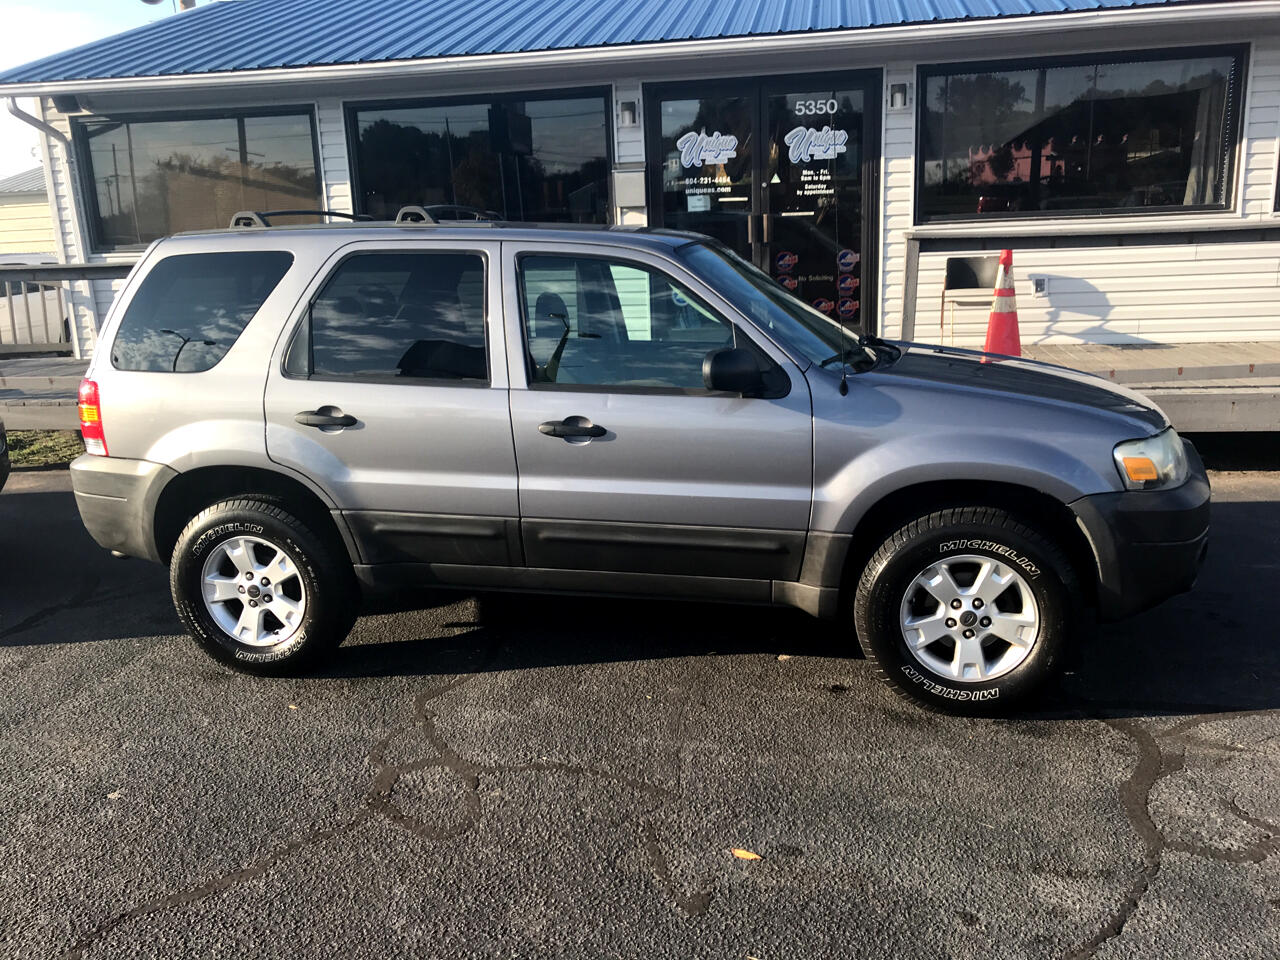 2007 Ford Escape 4WD 4dr I4 Auto XLT